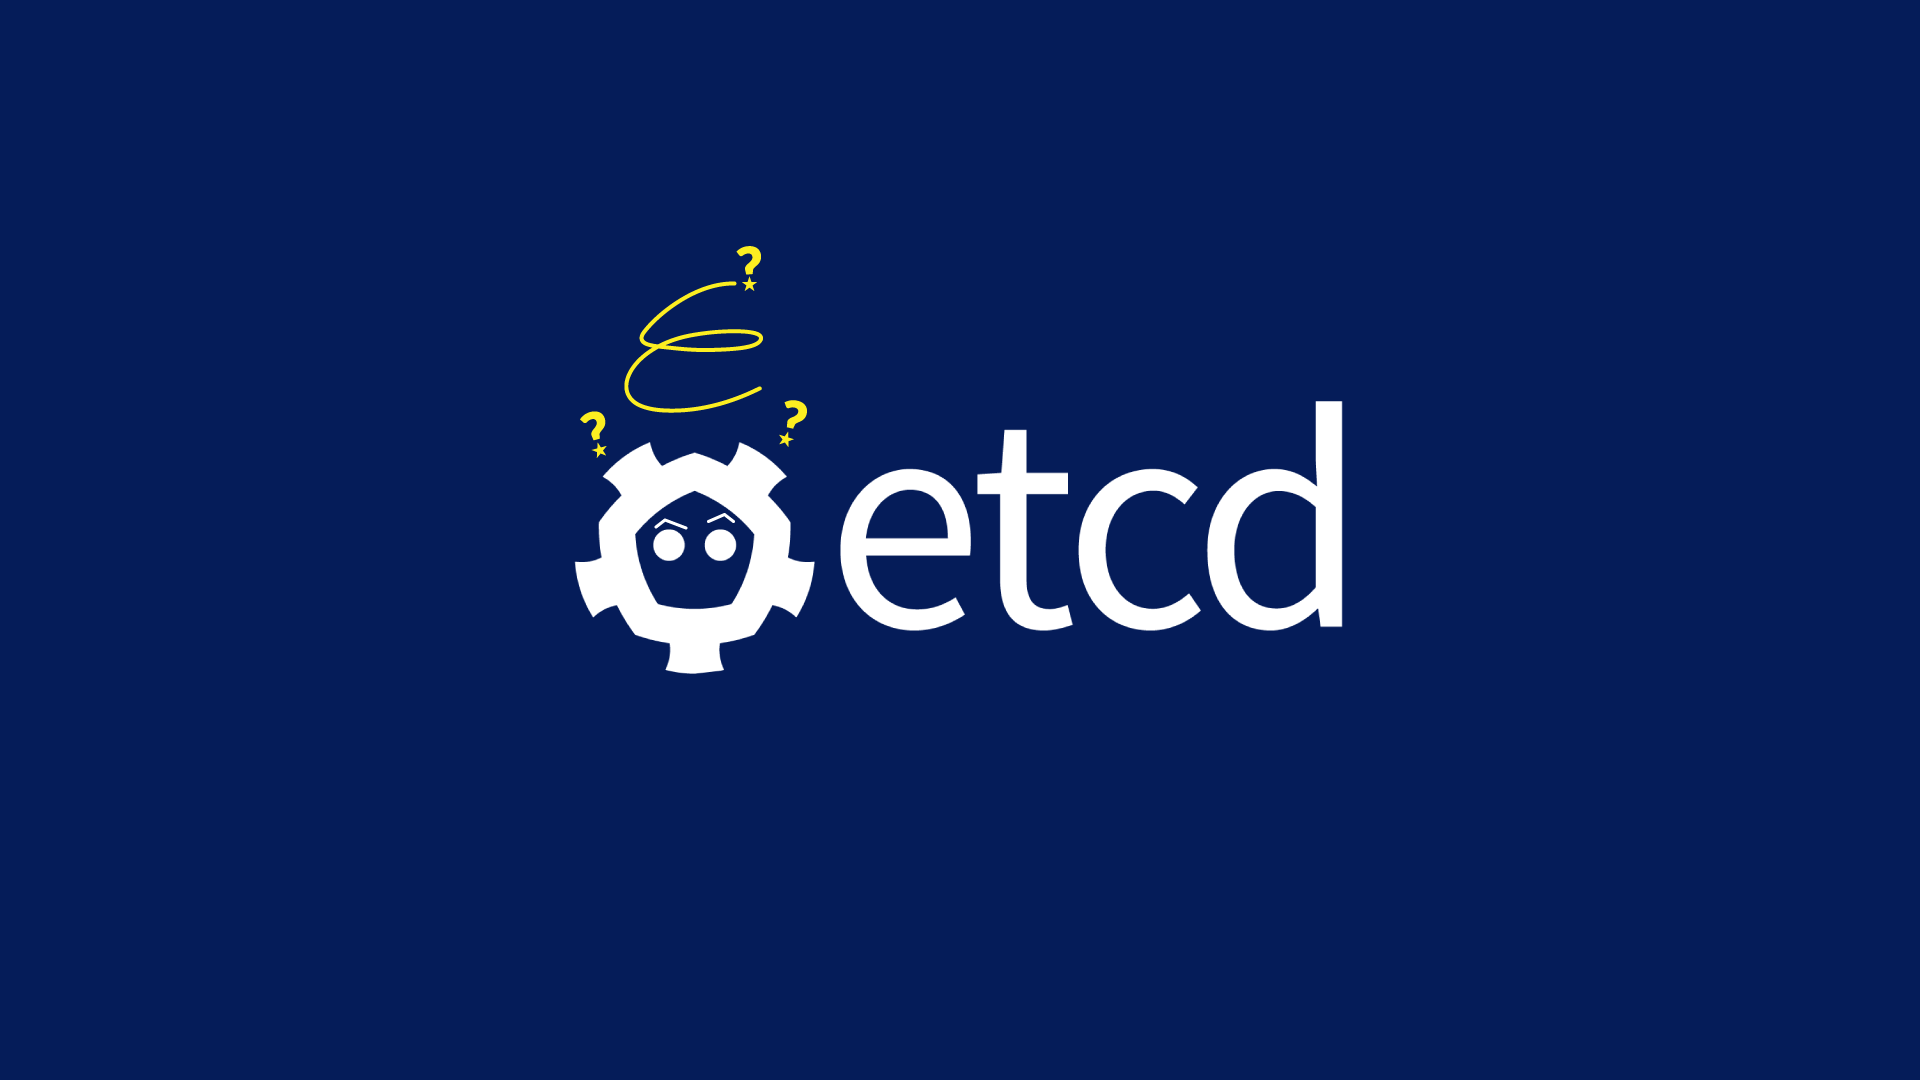 The etcd logo with raised eyebrows